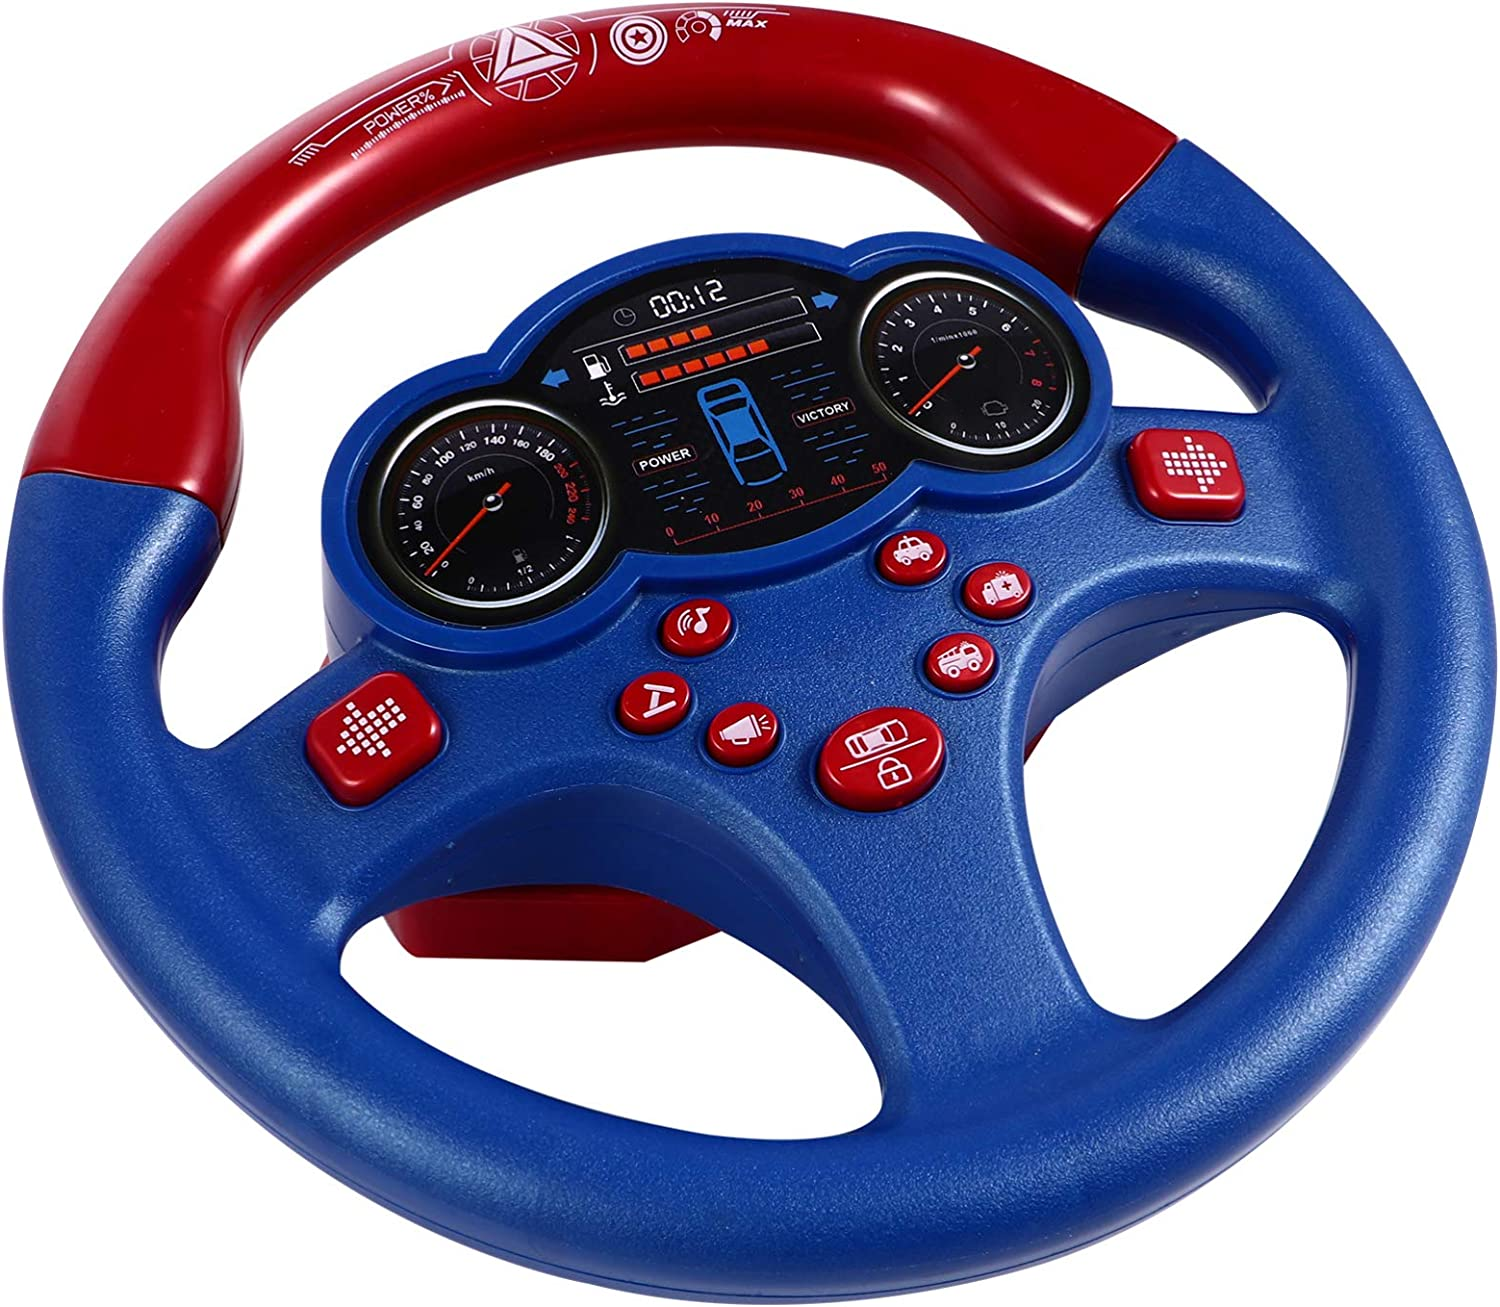 TOYANDONA Steering Wheel Toy Large discharge sale Copilo Simulated Controller Driving Free shipping New